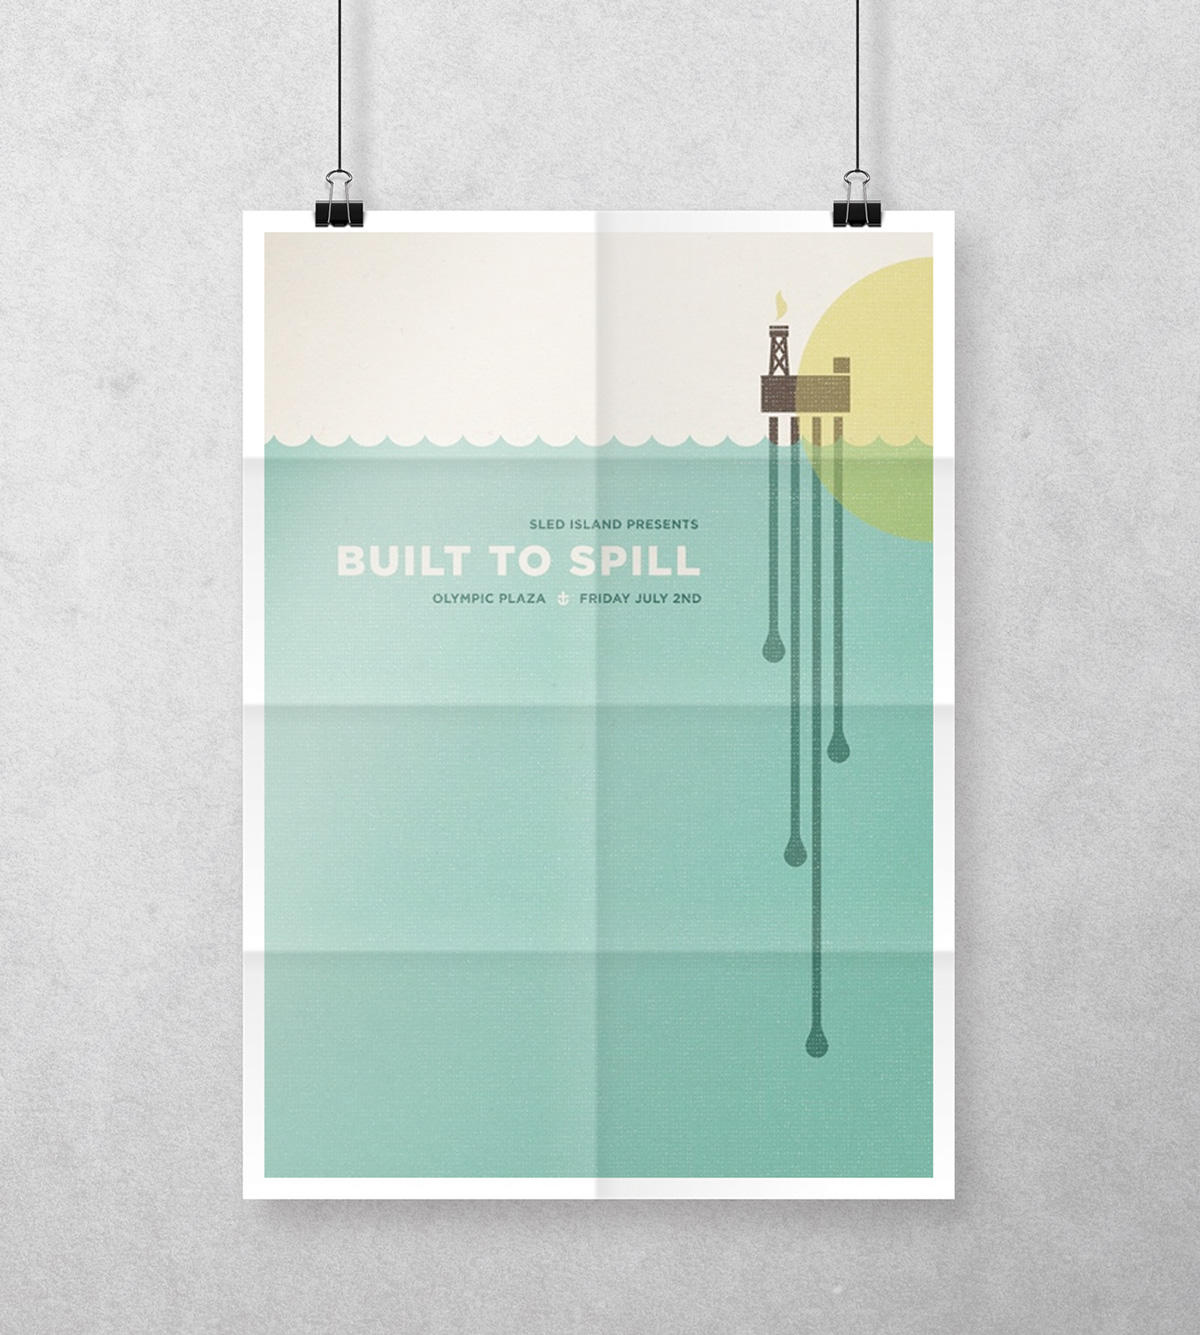 Free Poster Mockup Psd On Behance